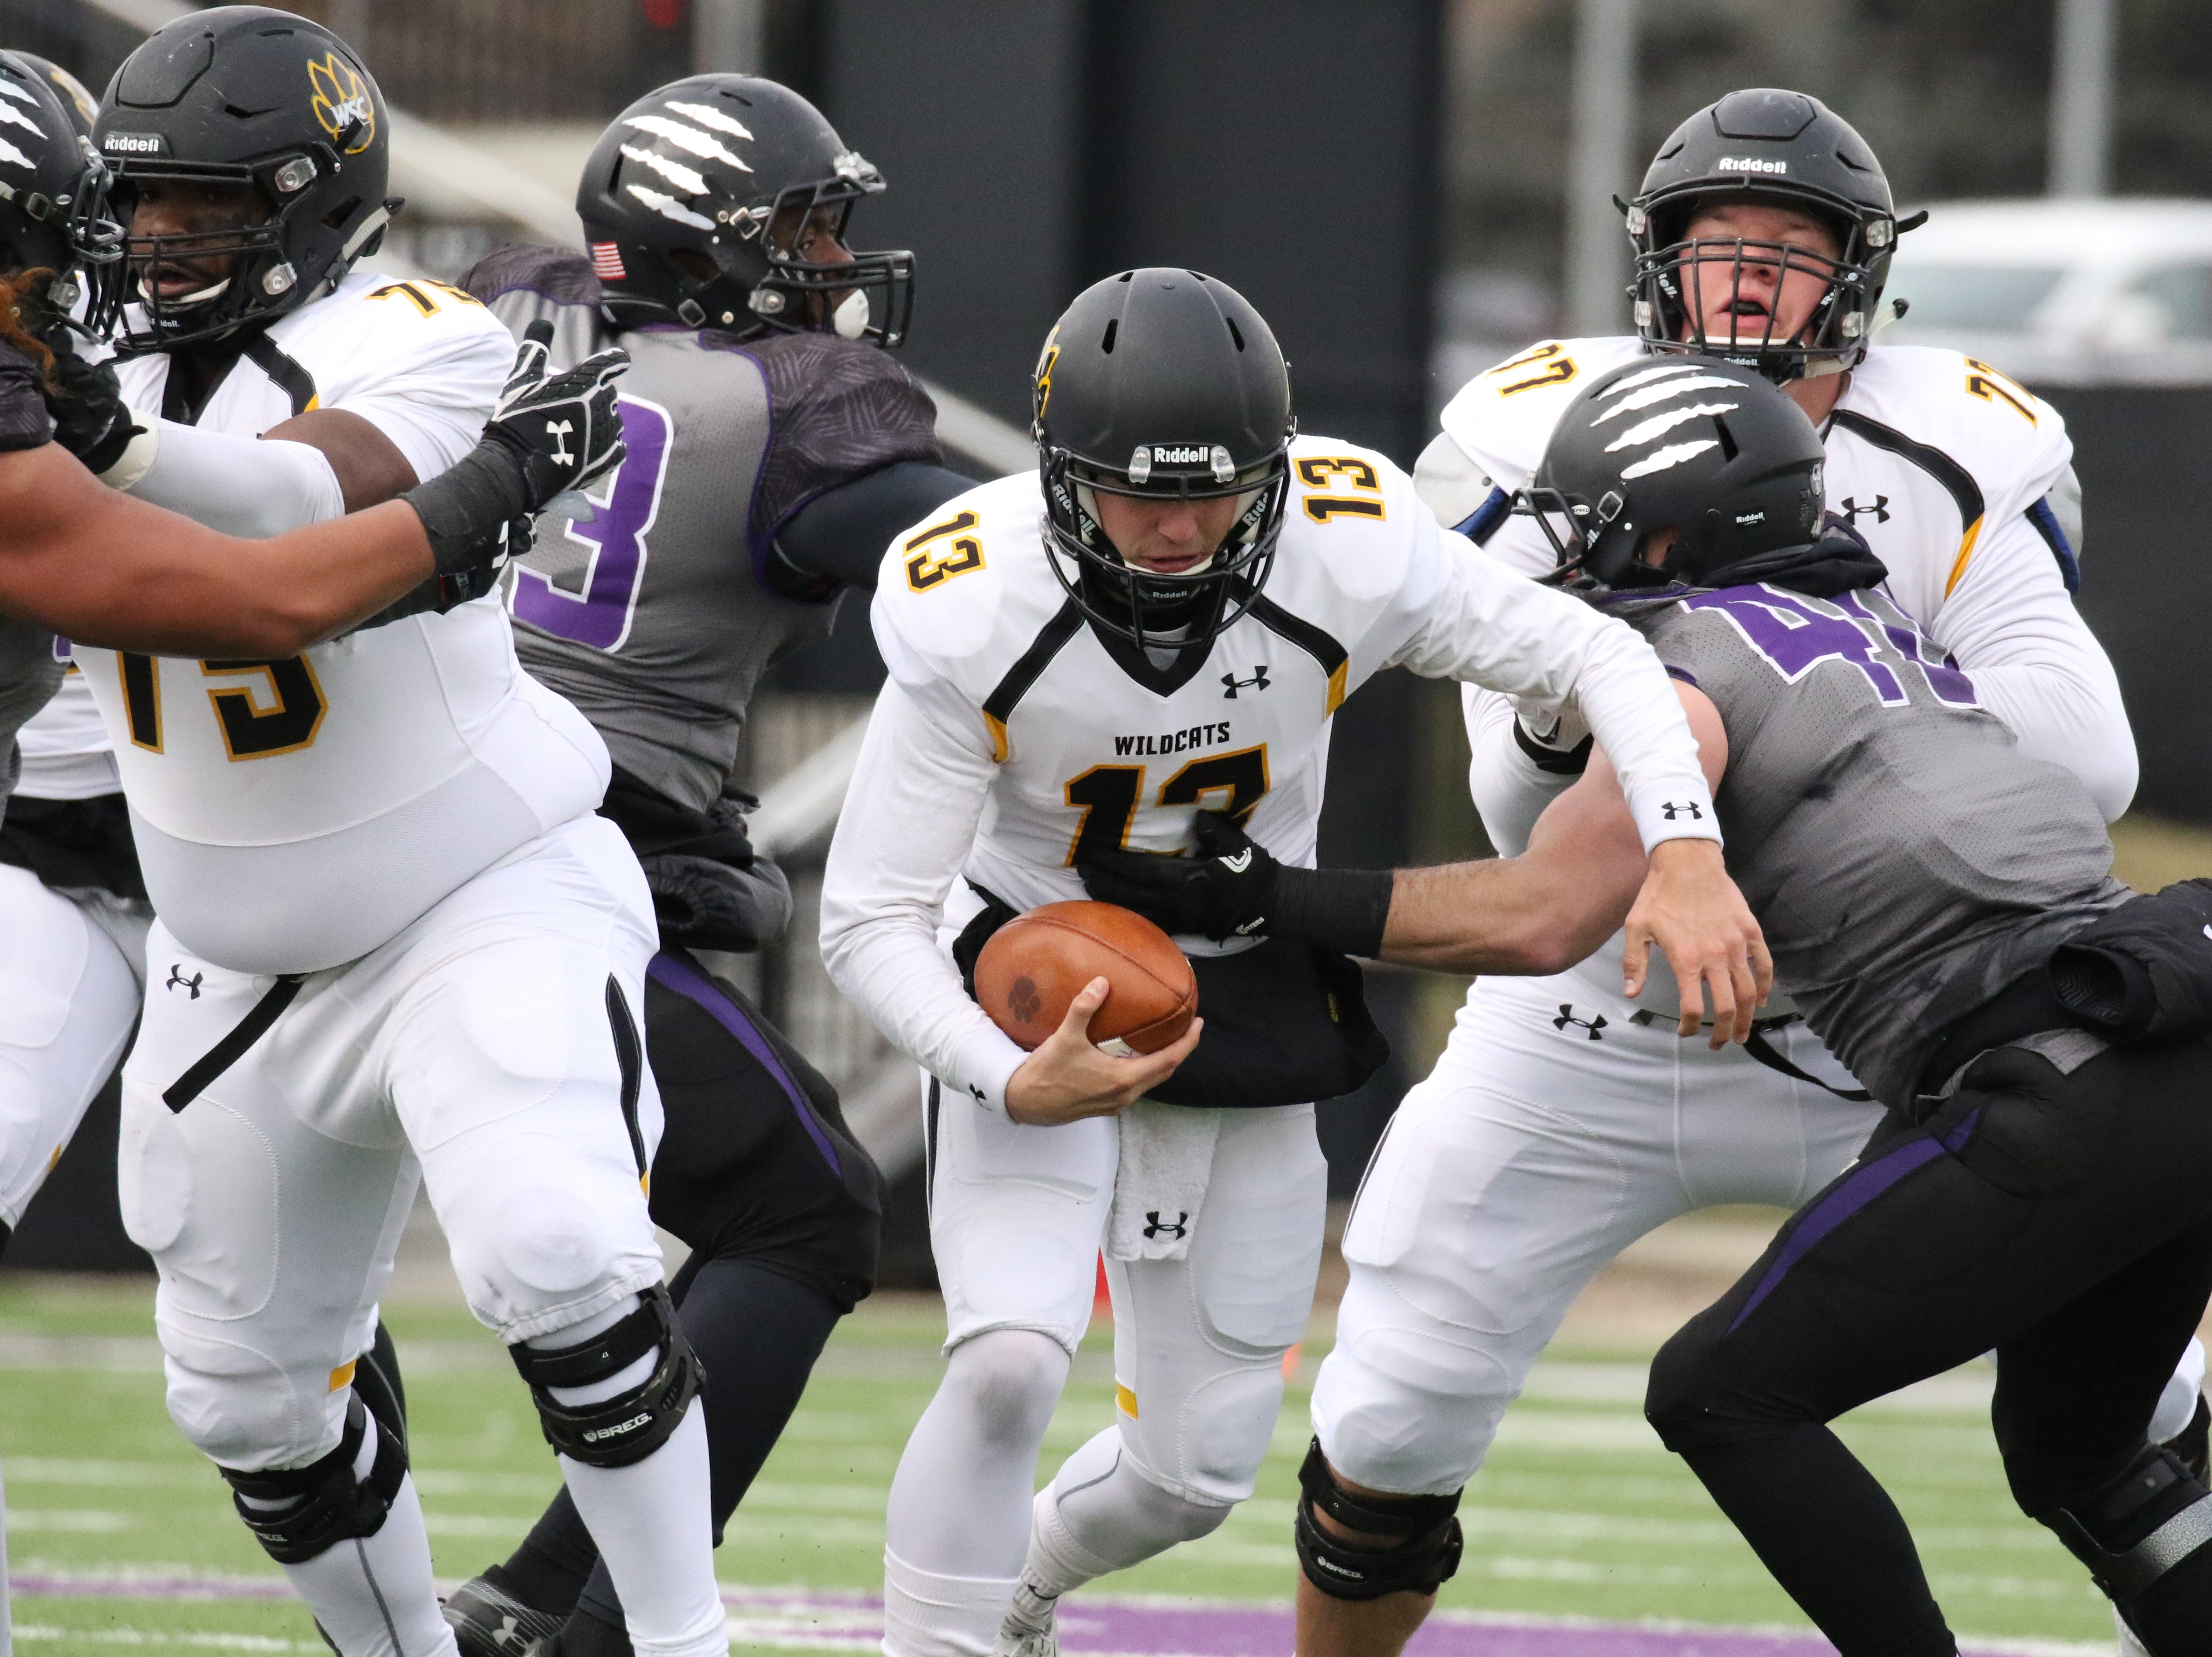 Brady Brandsfield of Wayne State is wrapped up by Shayden Drey of University of Sioux Falls during Saturday's game at Bob Young Field in Sioux Falls.